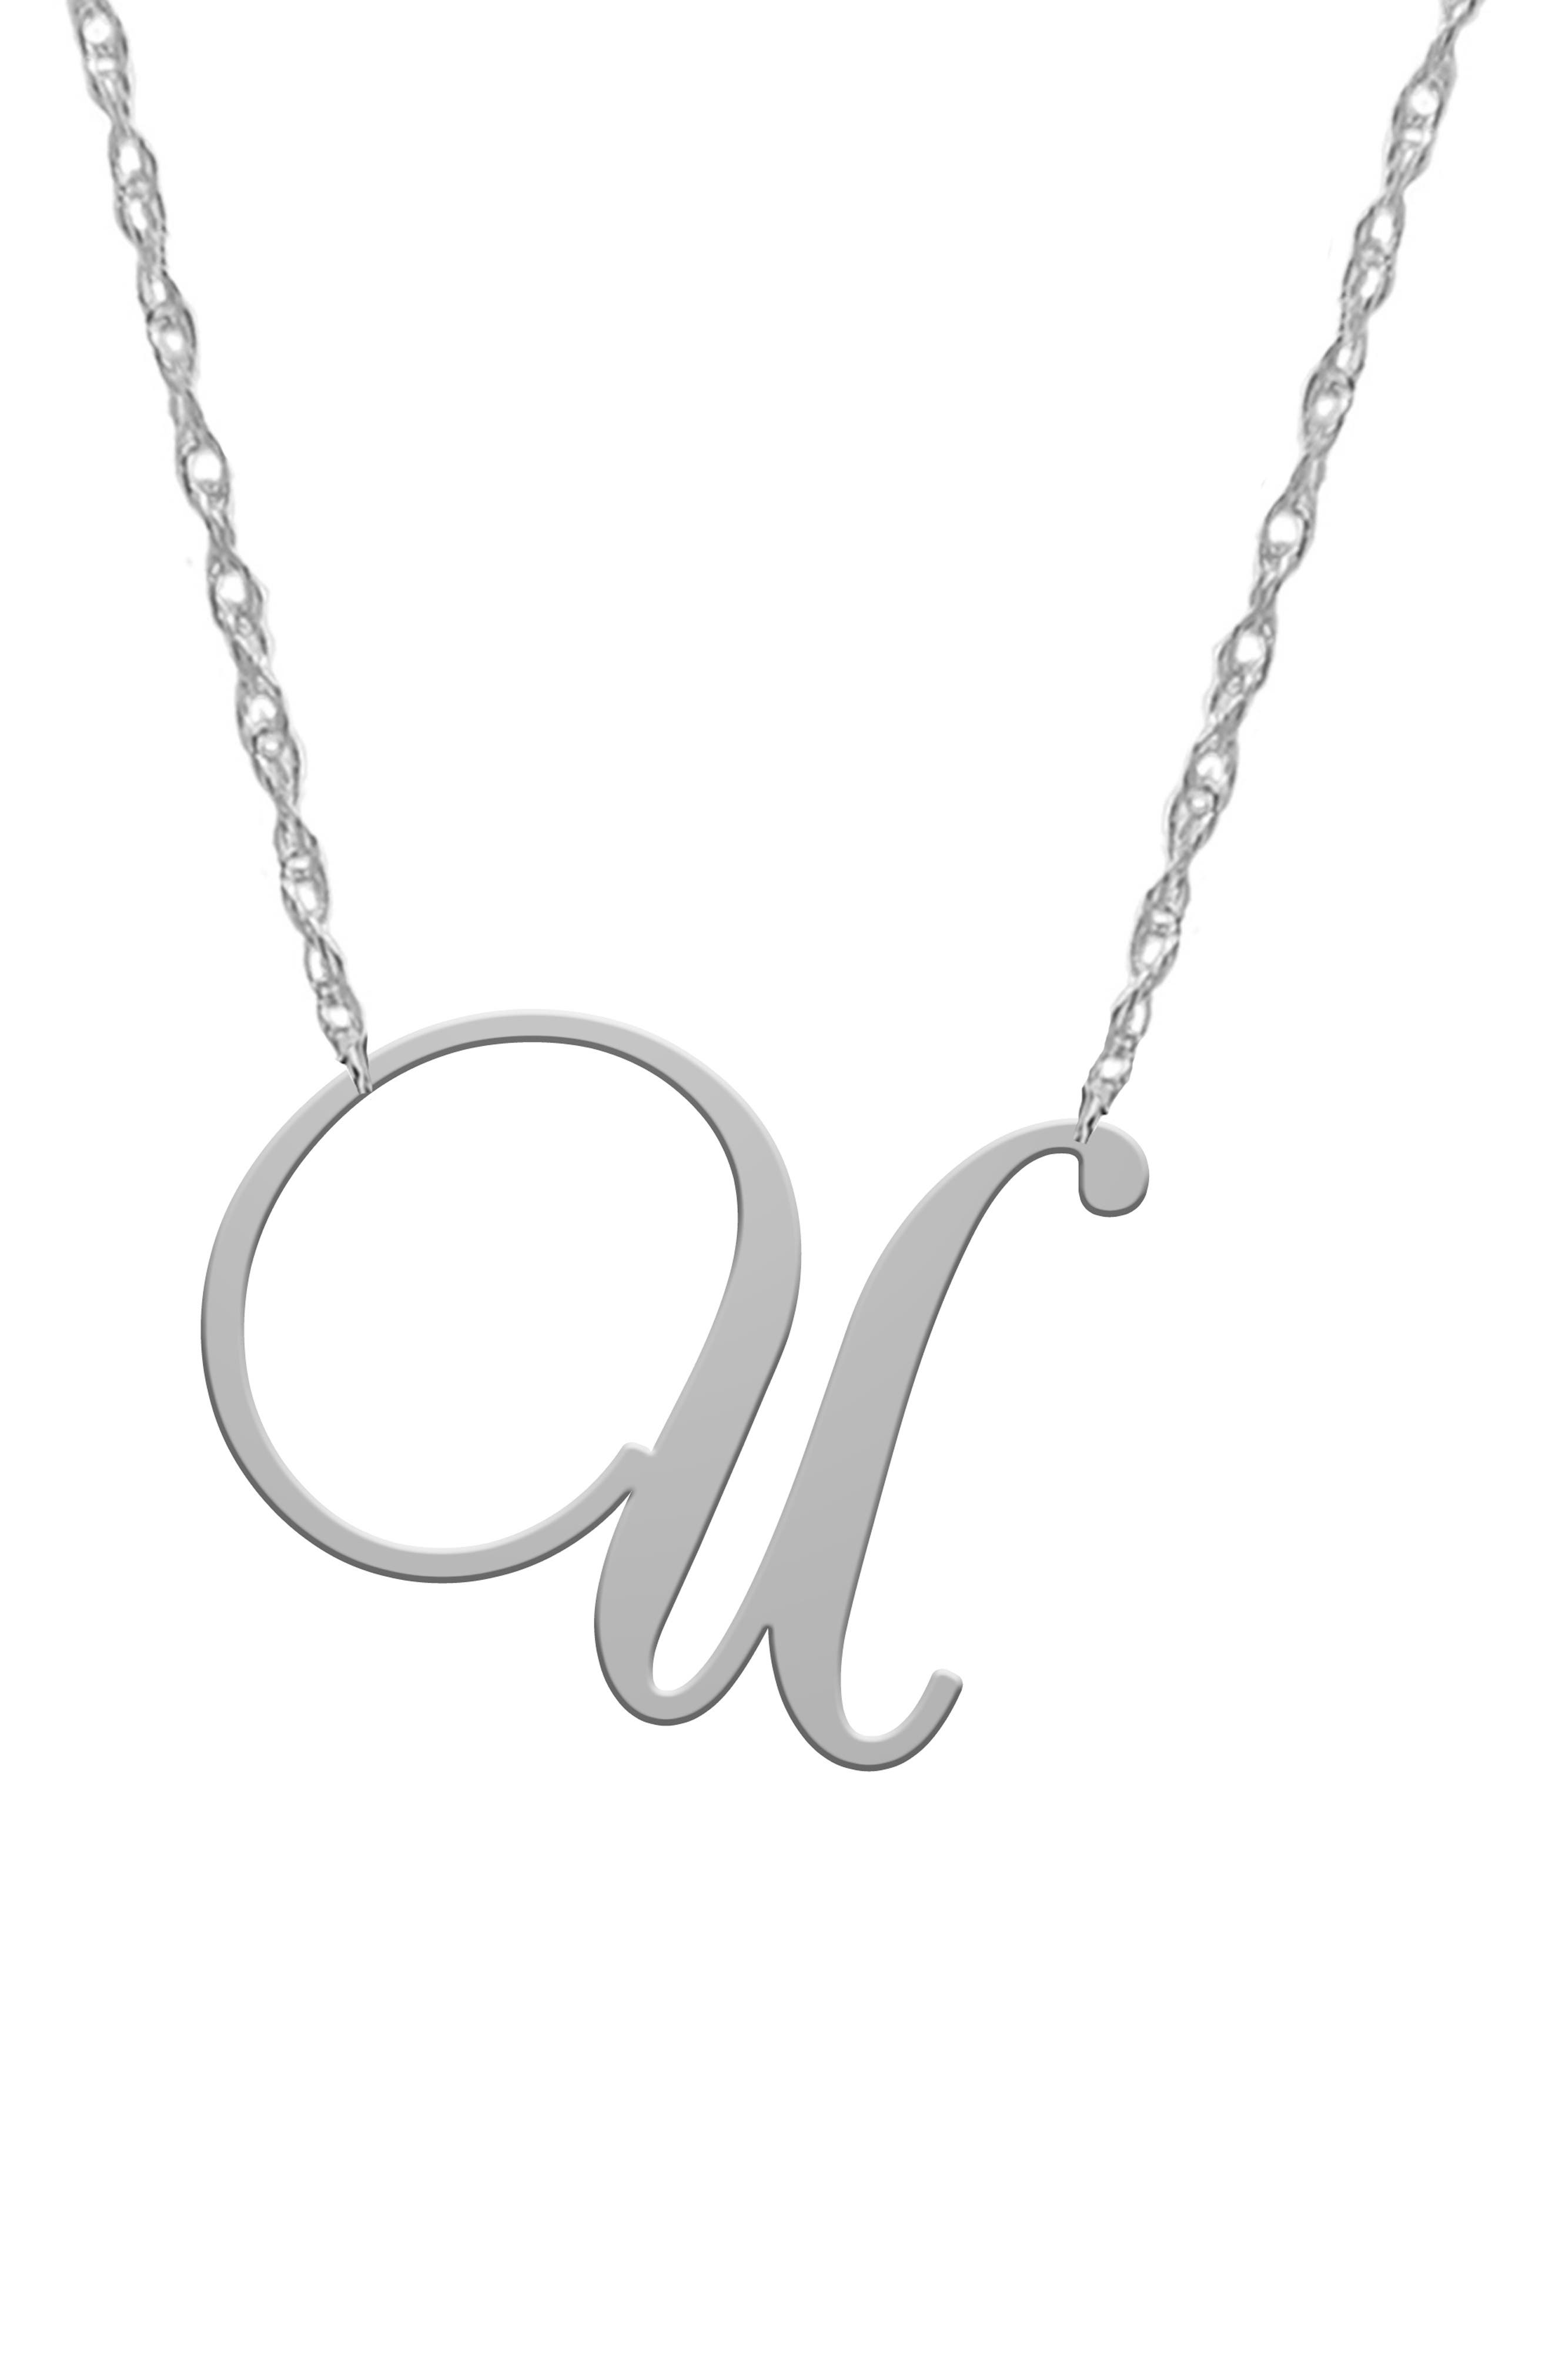 Swirly Initial Pendant Necklace